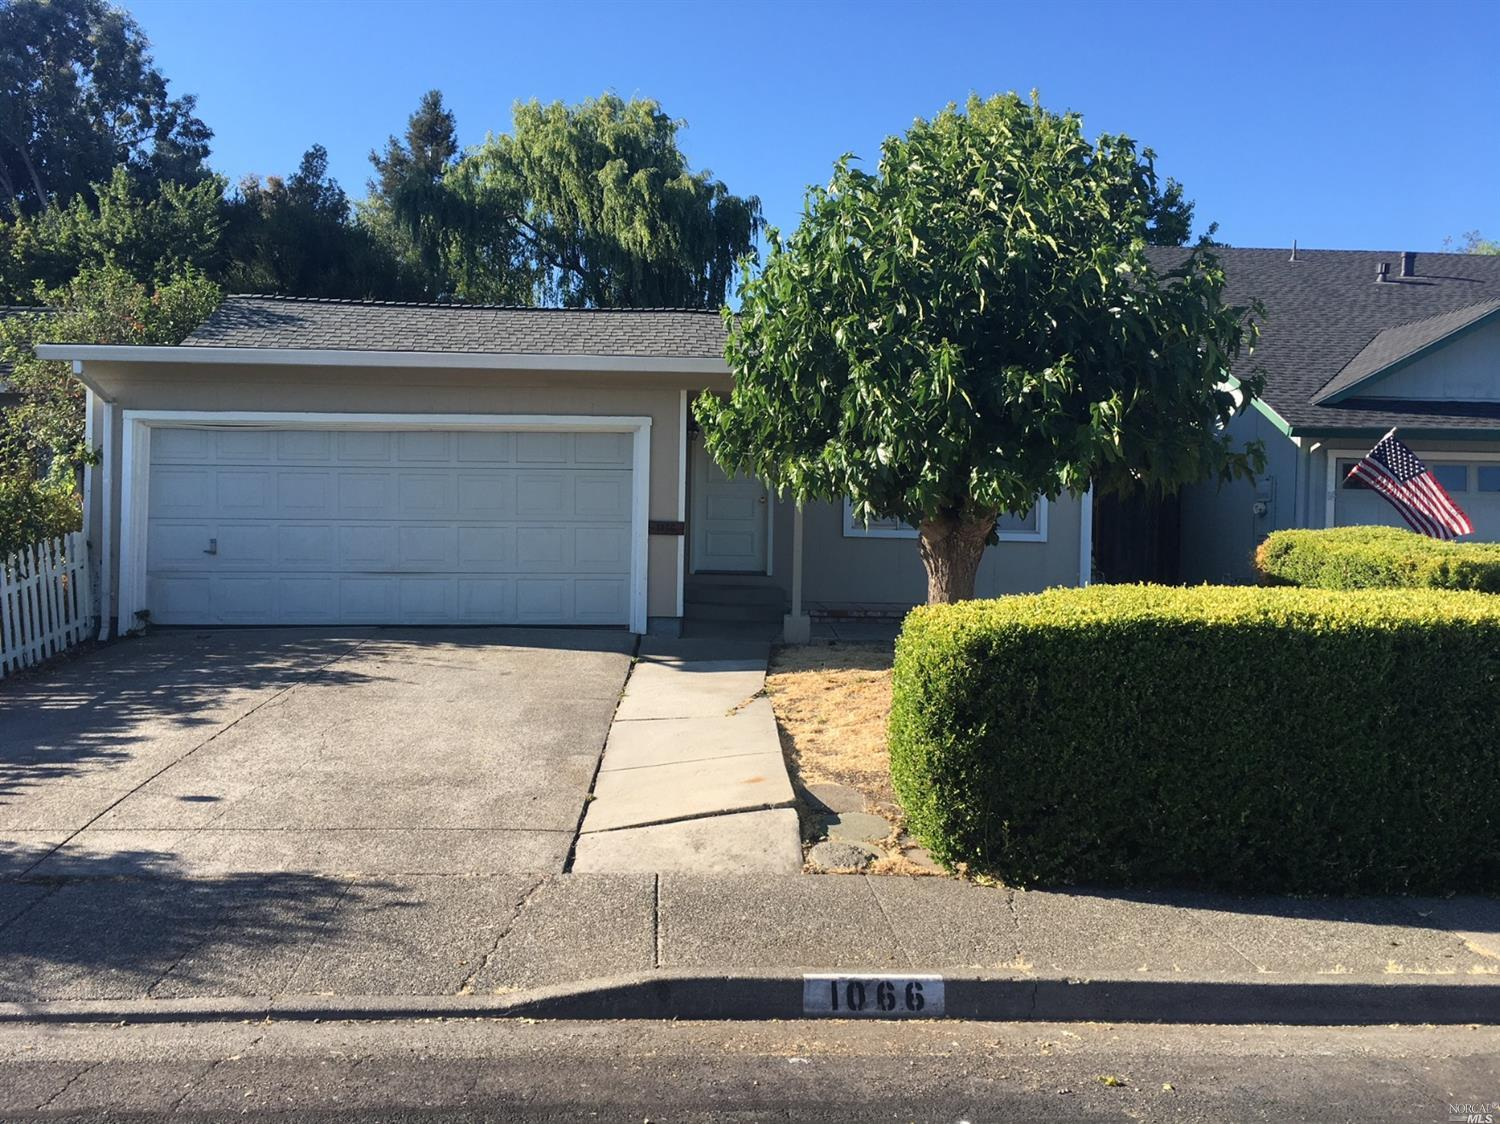 Look! Price Reduced! This is a must see property. Four Bedrooms Two Baths, close to SSU and transportation. Refrigerator, Washer, Dryer and Landscaping included.   Co-signers welcome. Available June 1.  Sorry, no pets allowed.